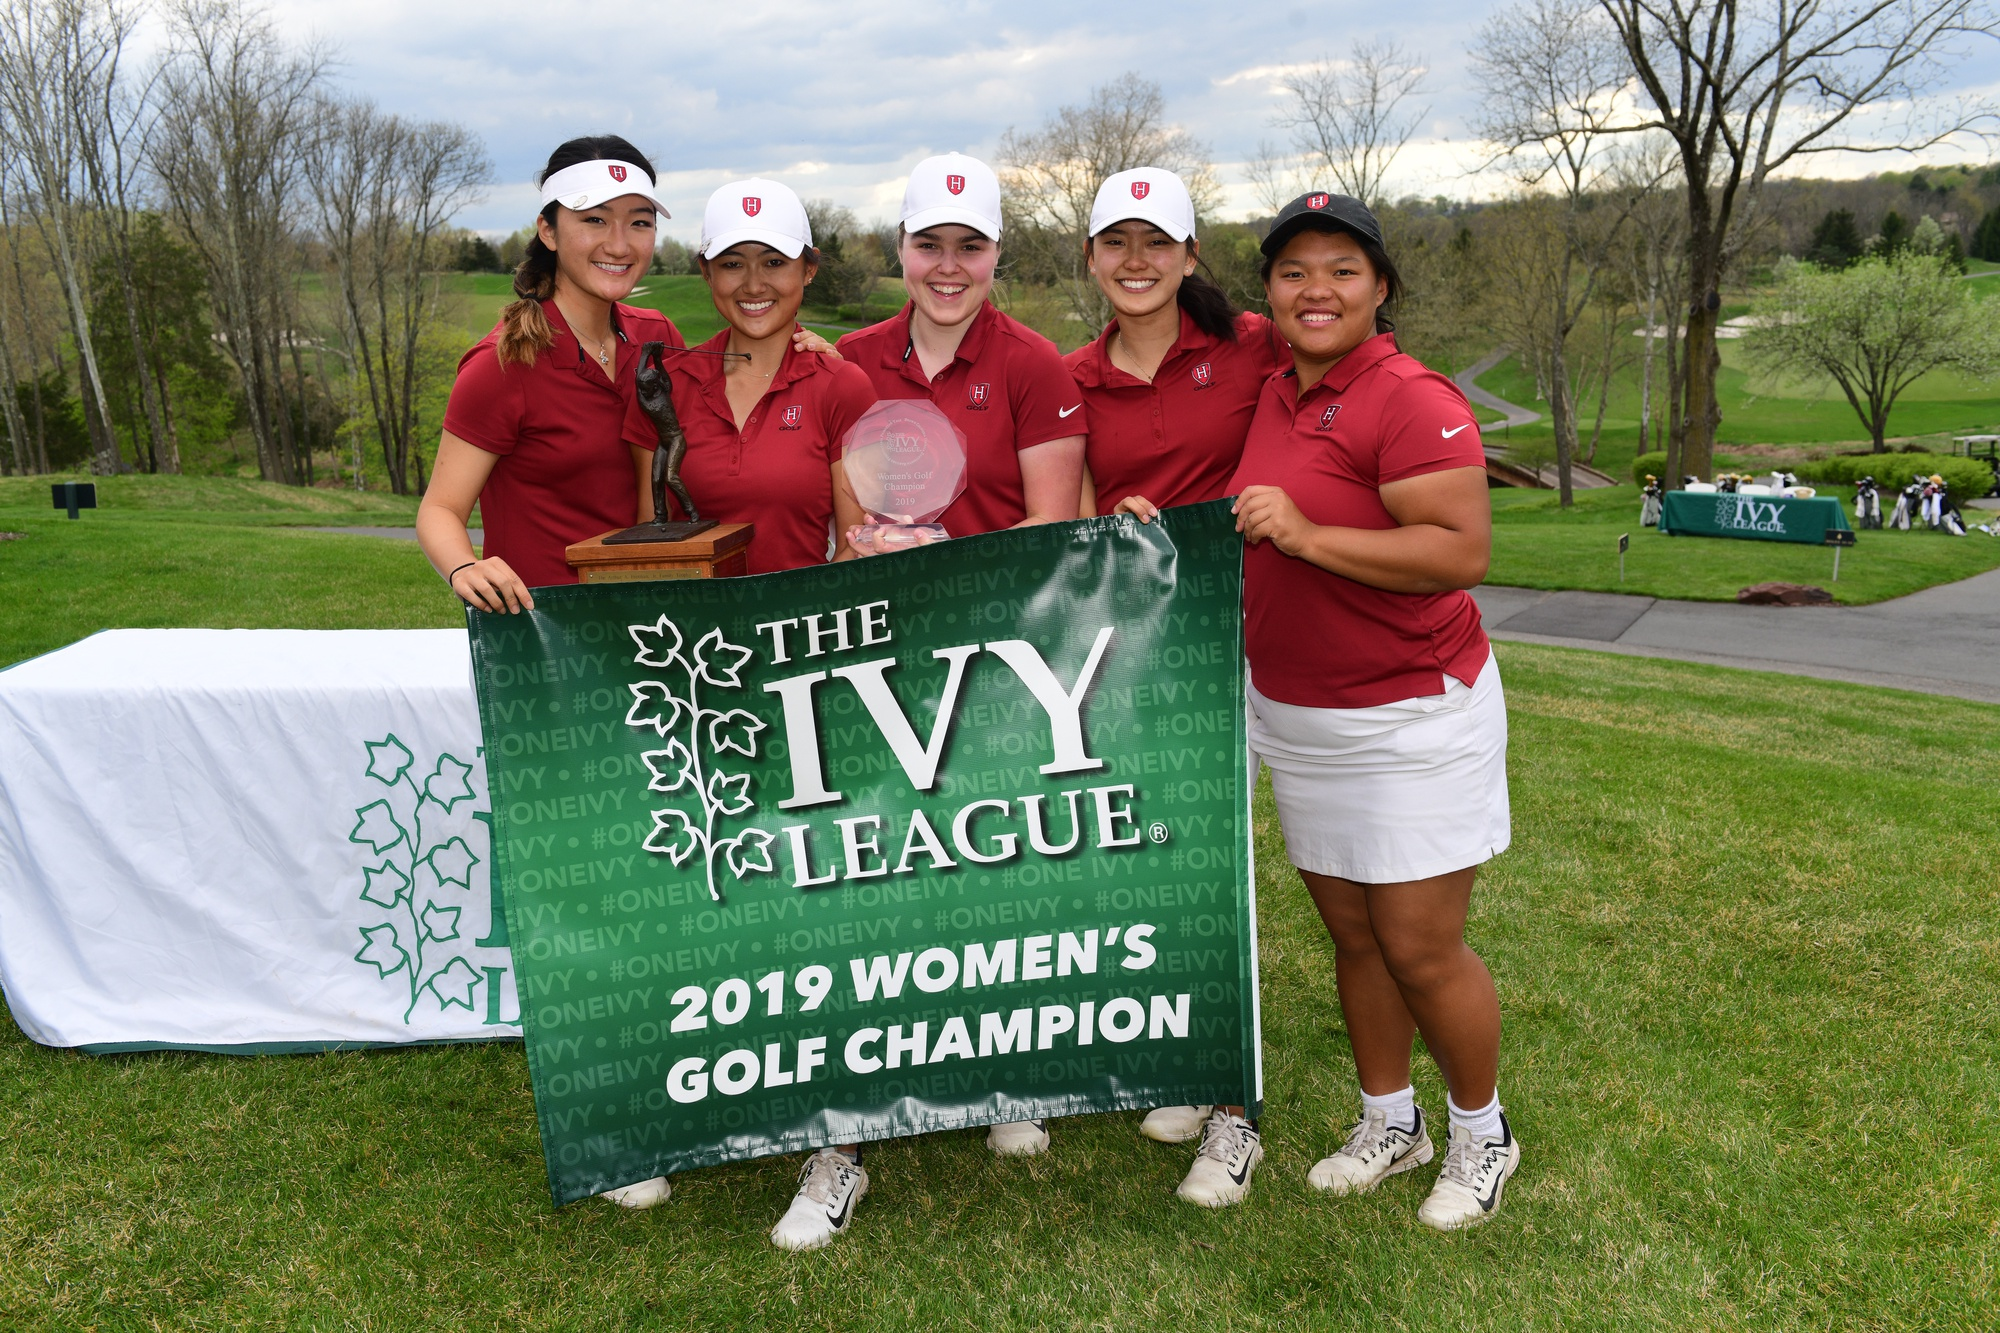 Women's golf leaves New Jersey decorated, as the team took home its sixth conference title in the last eight years.